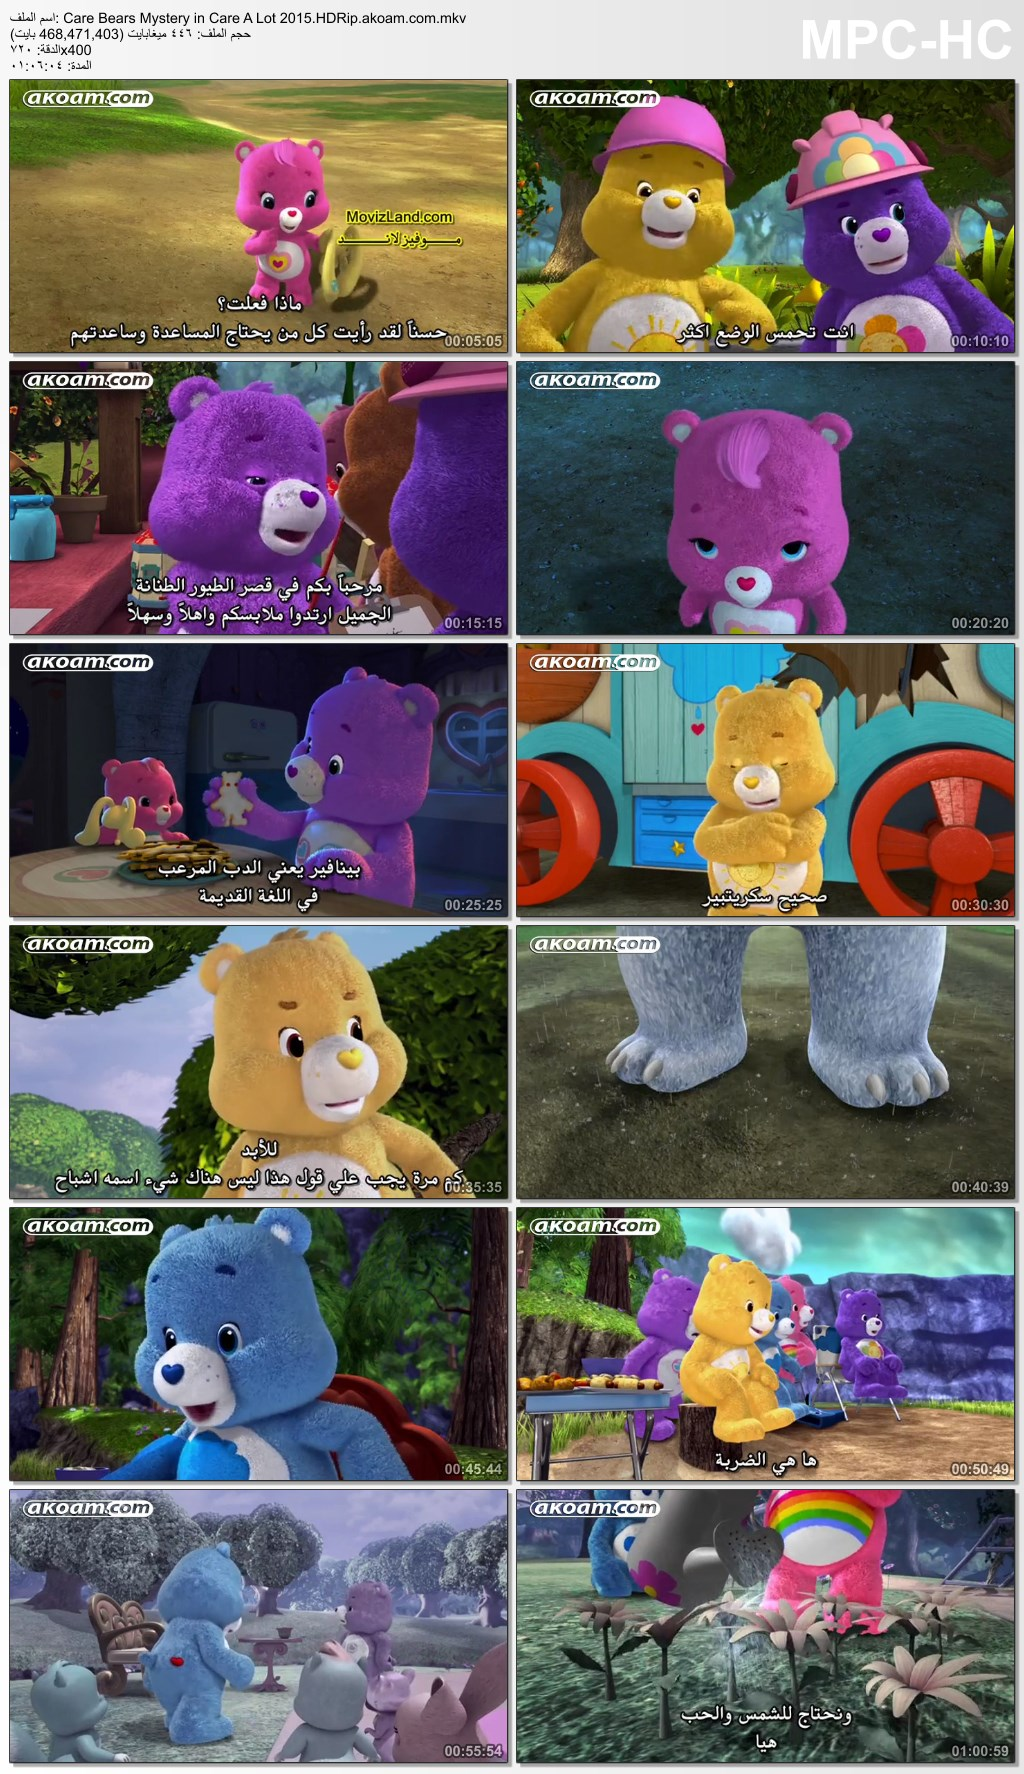 Care Bears Mystery in Care A Lot,الانيميشن